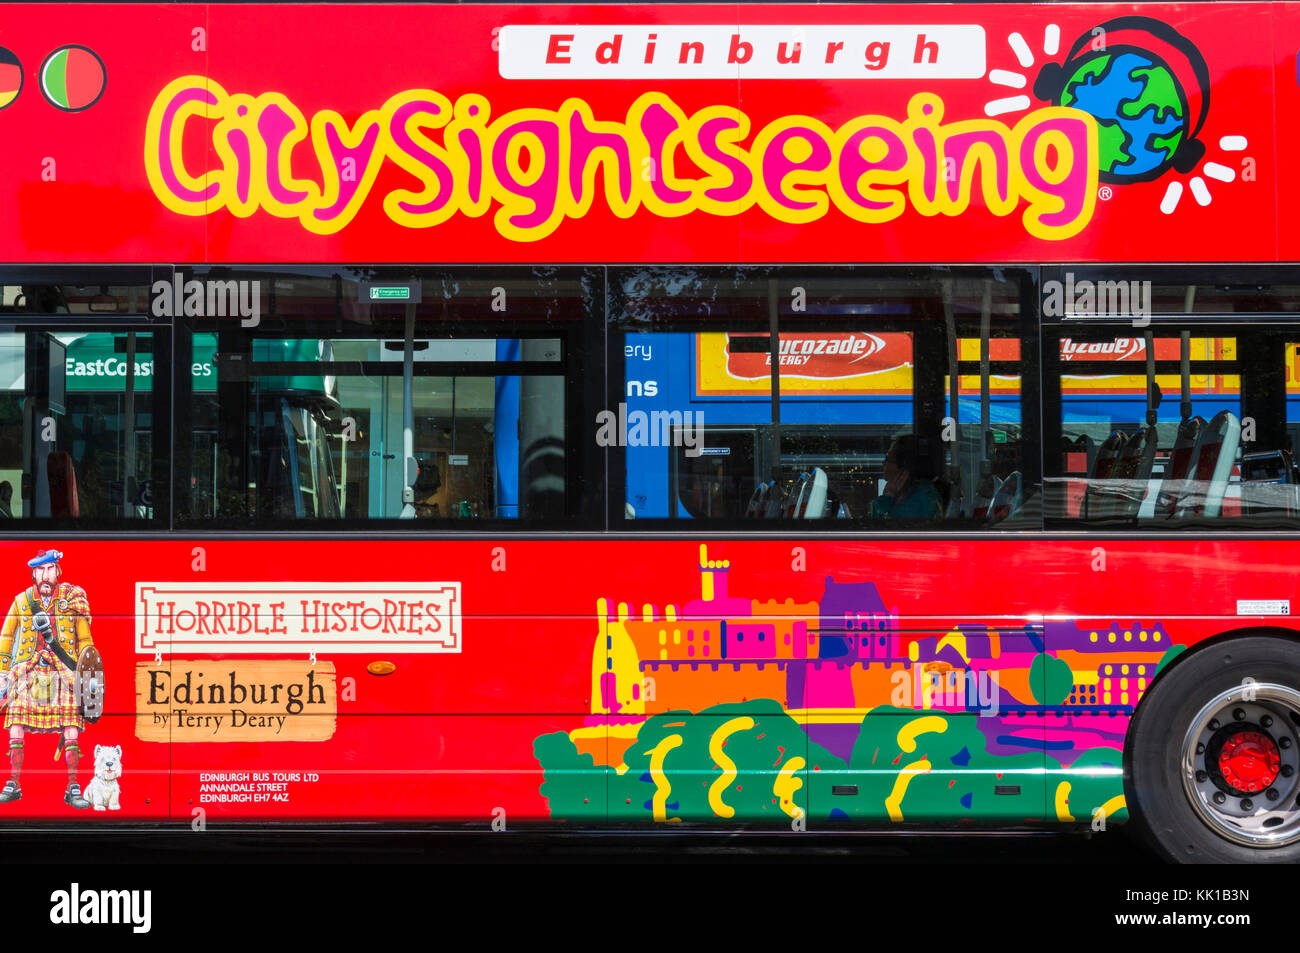 Edinburgh scotland edinburgh citysightseeing bus sightseeing bus tour in a red bus edinburgh scotland uk gb europe - Stock Image